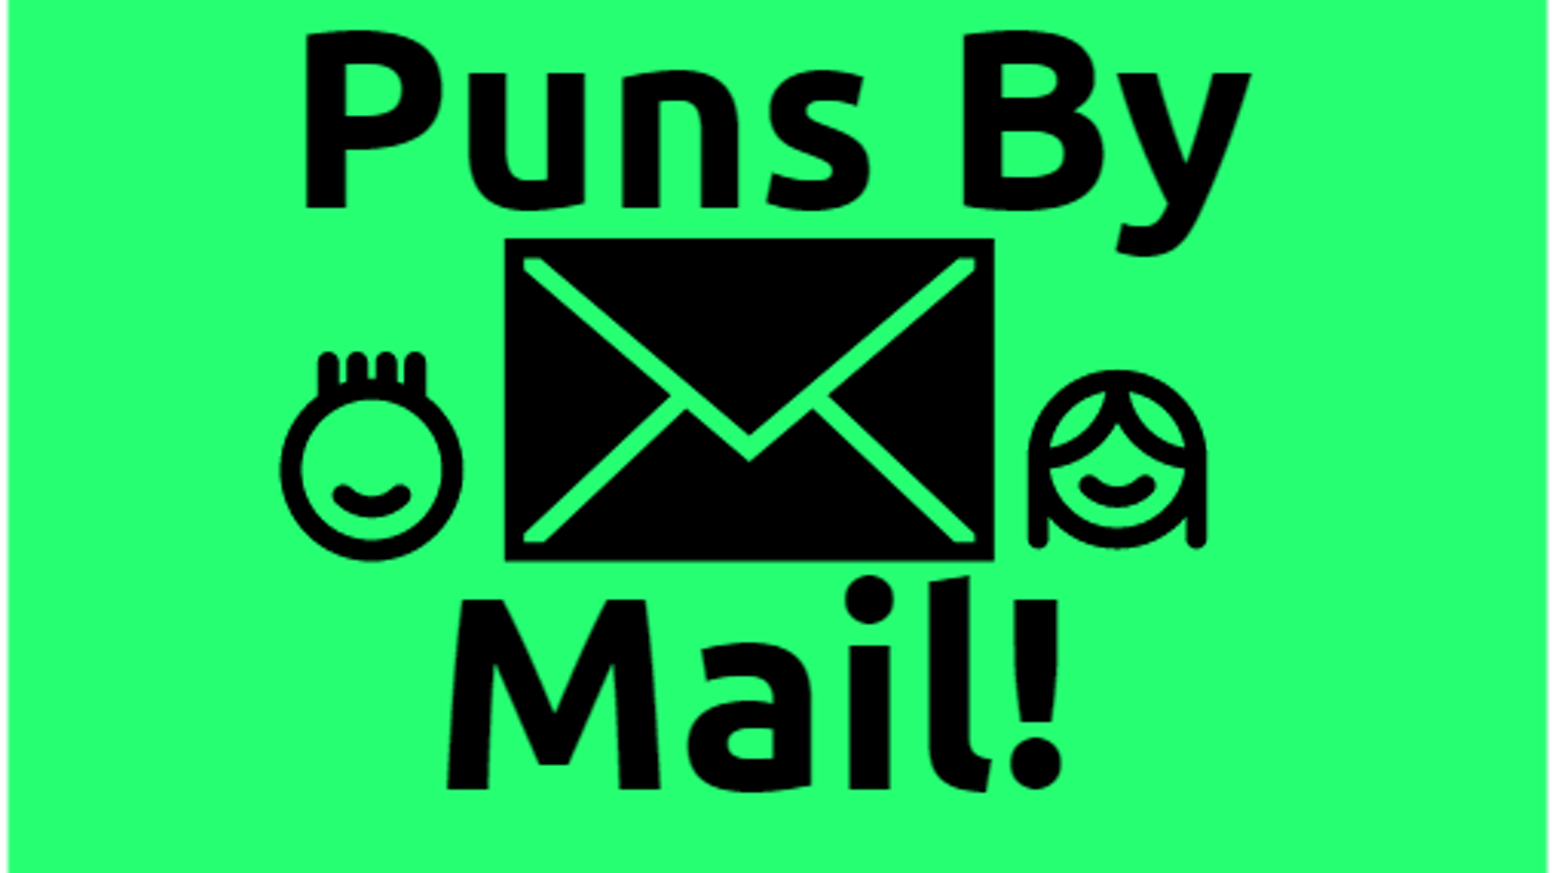 Puns By Mail! Hilarious Pun Cartoons Delivered To Your Door! by Cole